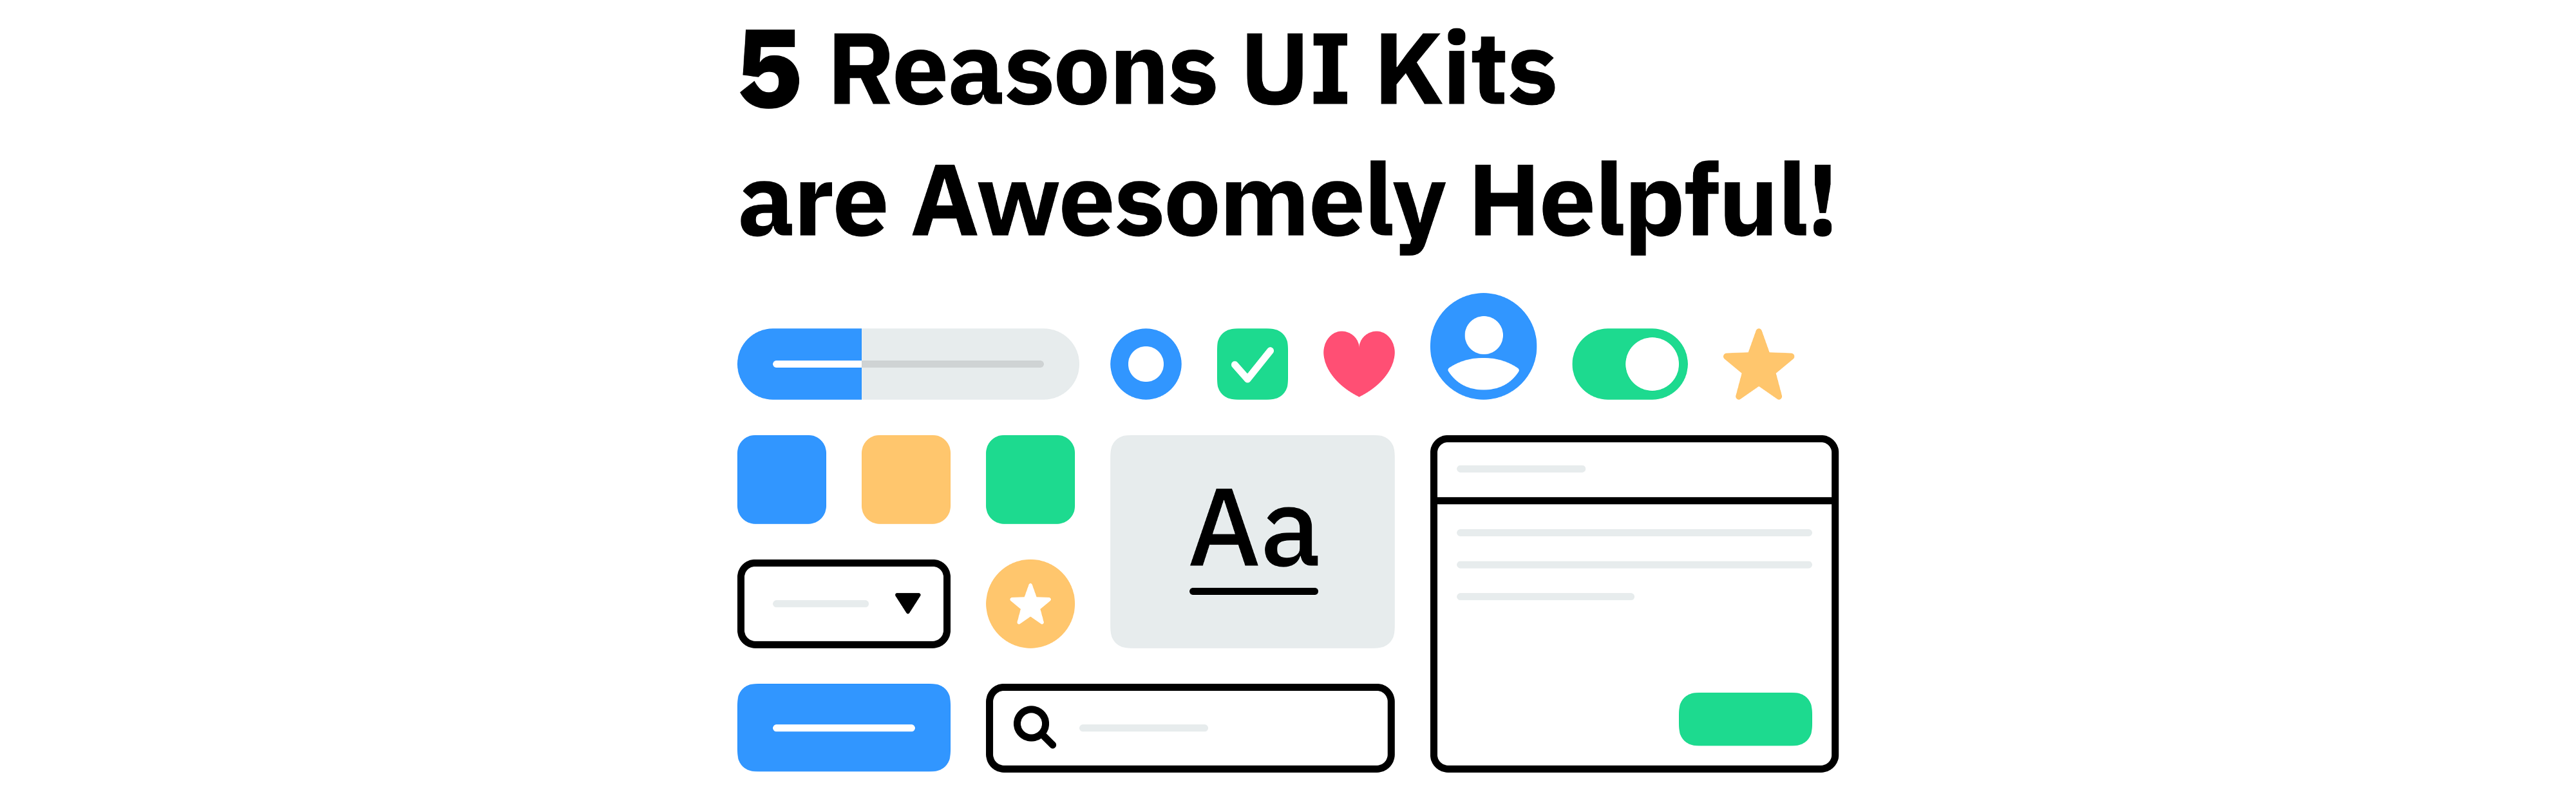 5 Reasons UI Kits are Awesomely Helpful! - Design + Sketch